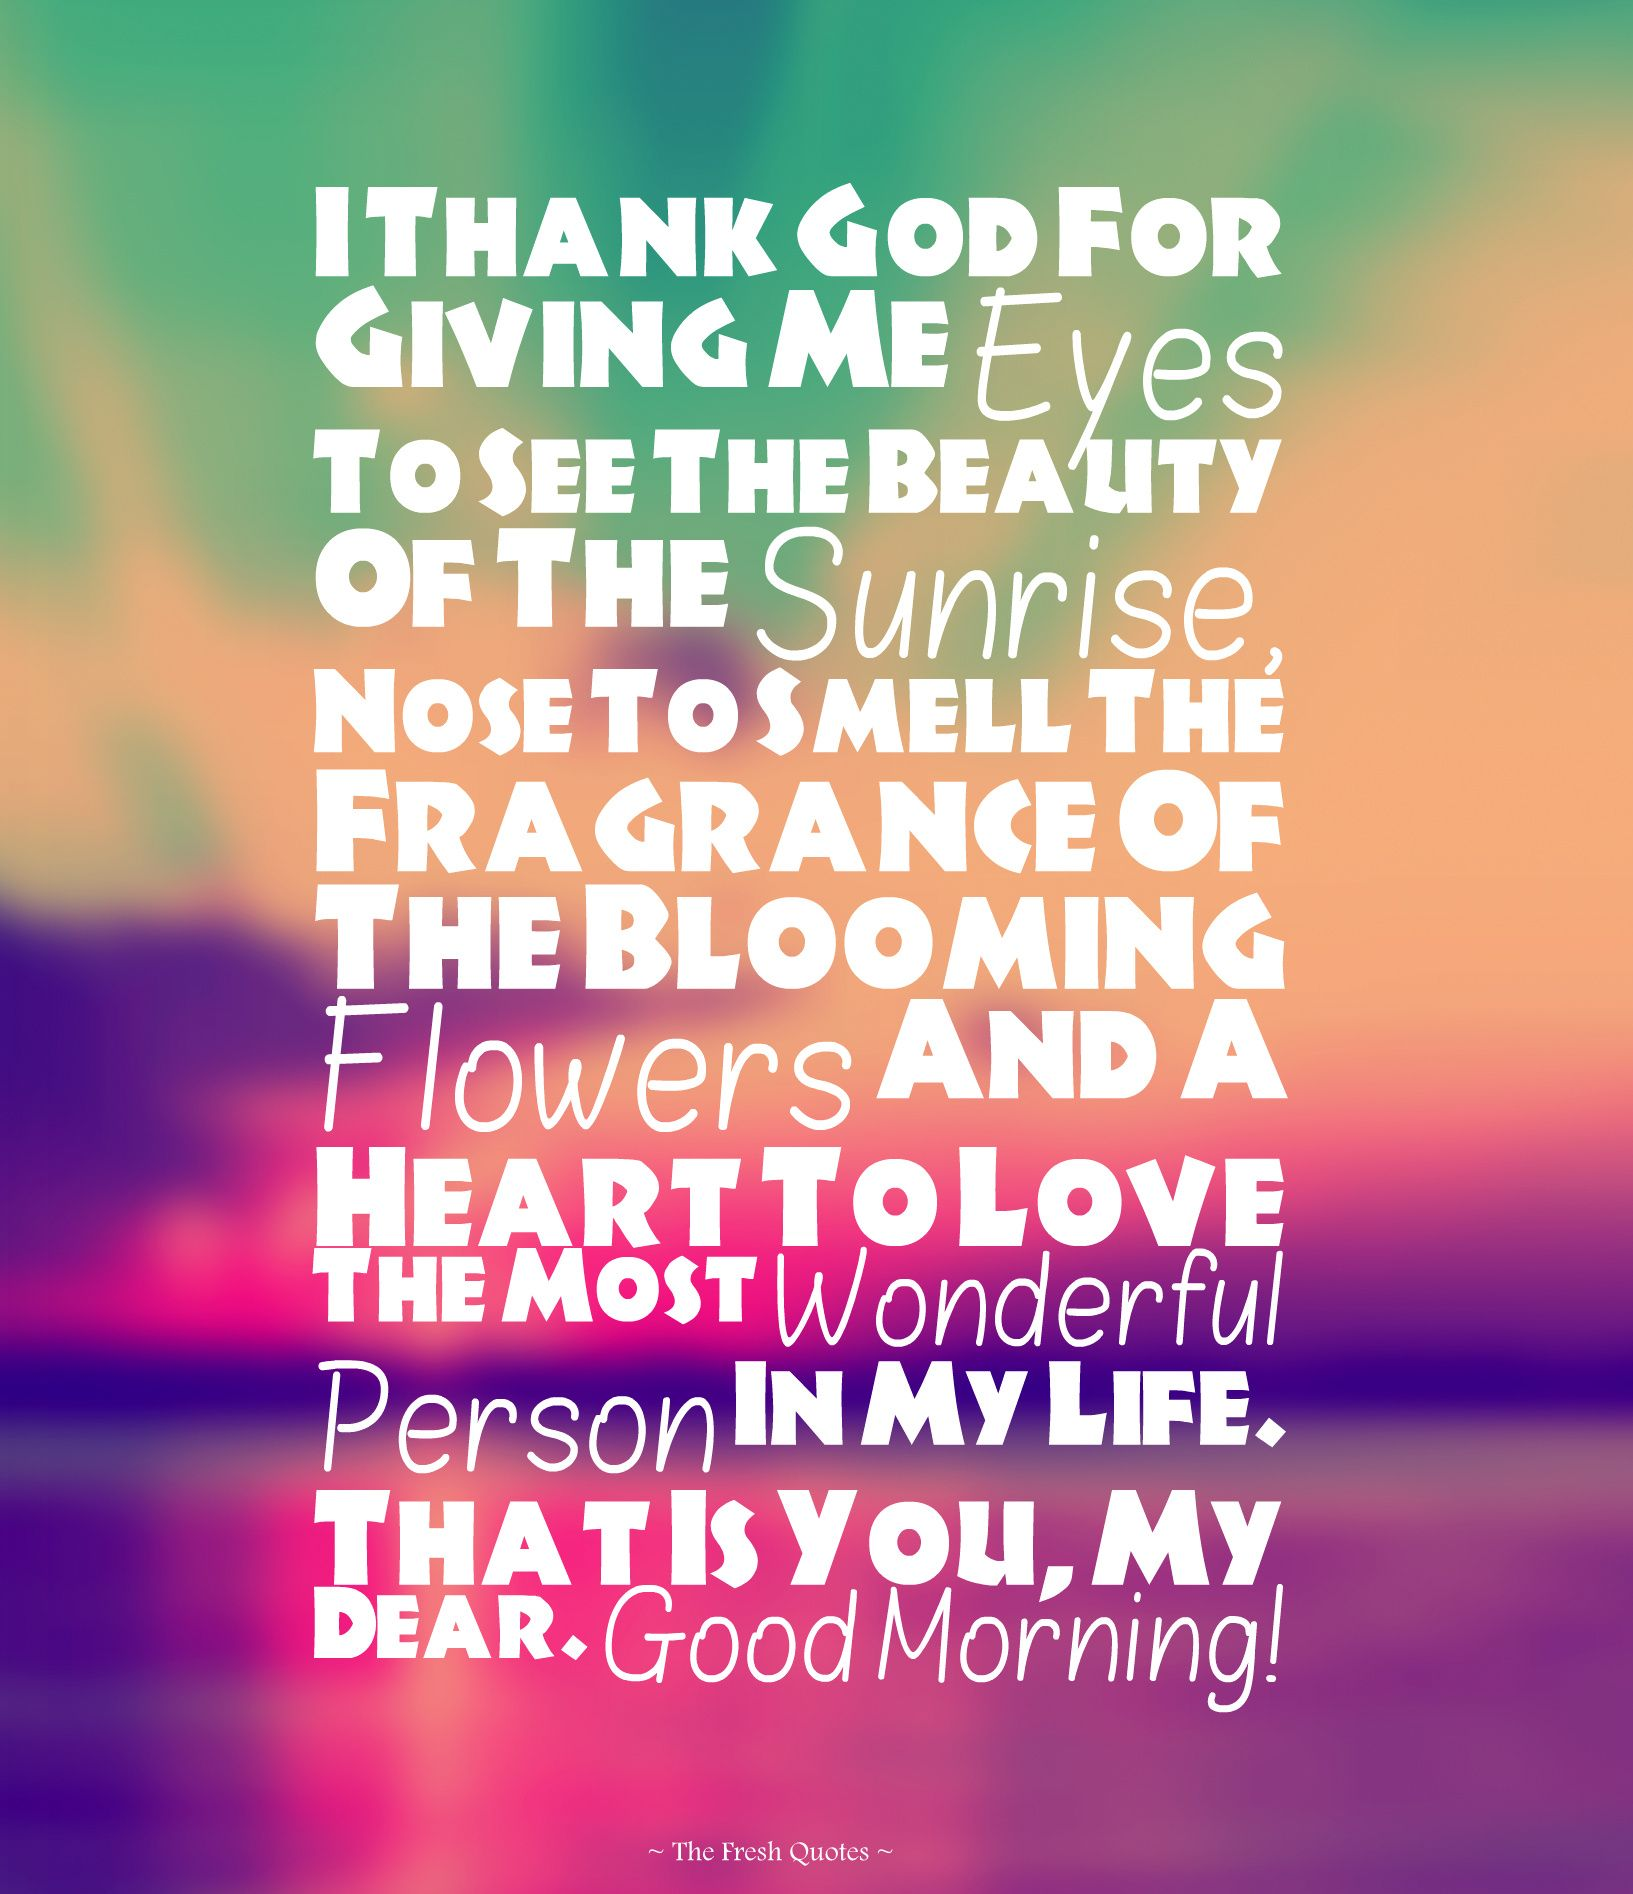 55 Cute & Romantic Good Morning Wishes Quotes & Wishes